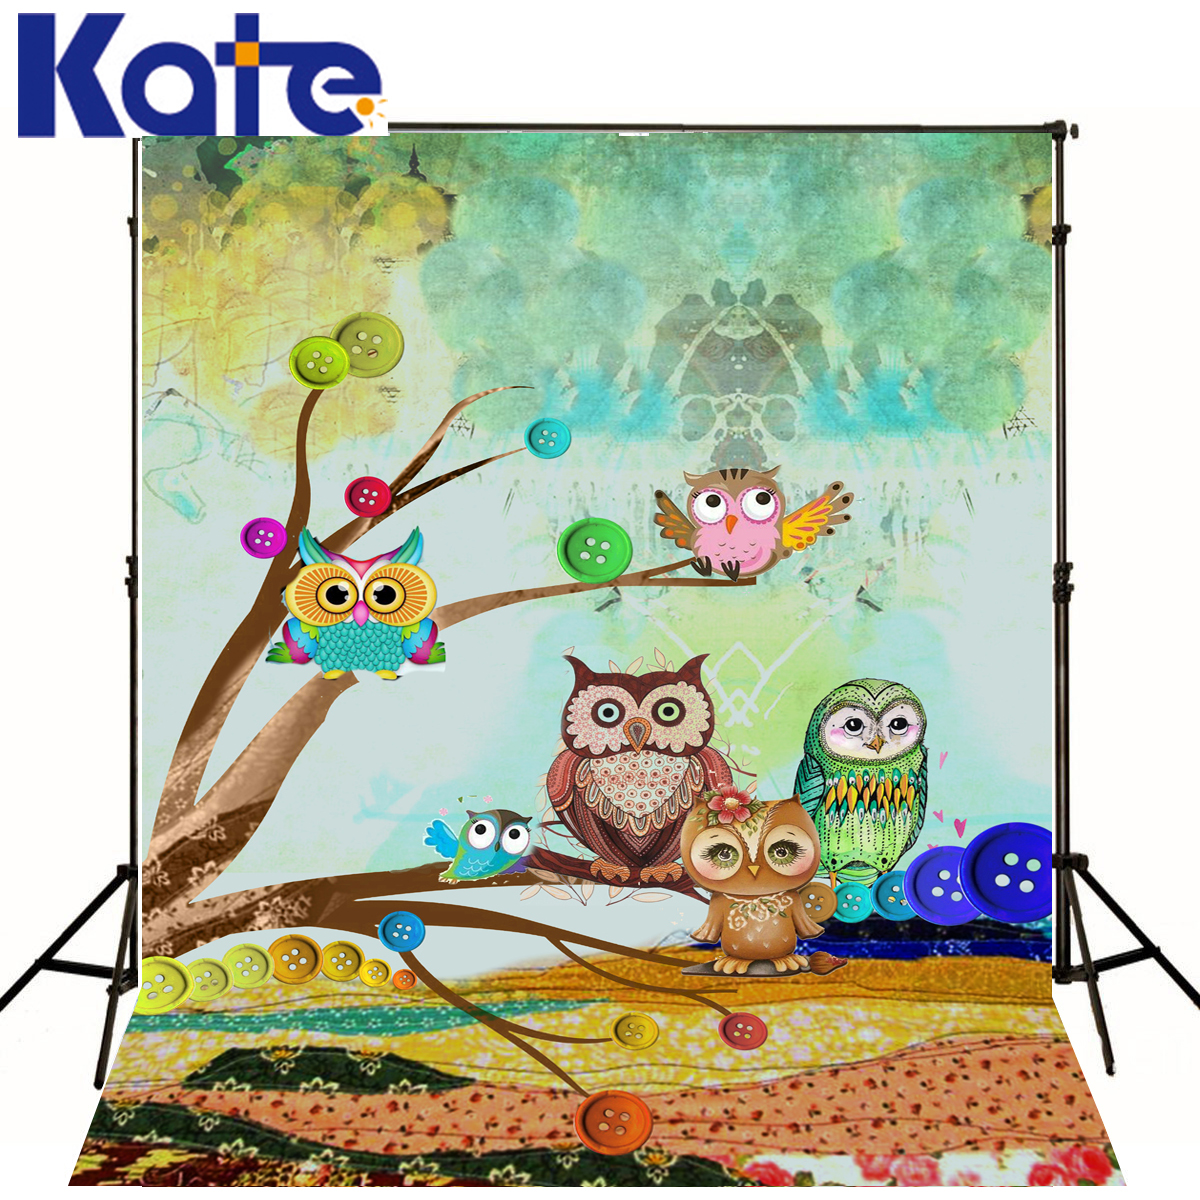 Kate Baby Photography Backdrops Owl Button Tree Photocall Painting Color Backgrounds Fotografia For Photo Studio J01686<br>